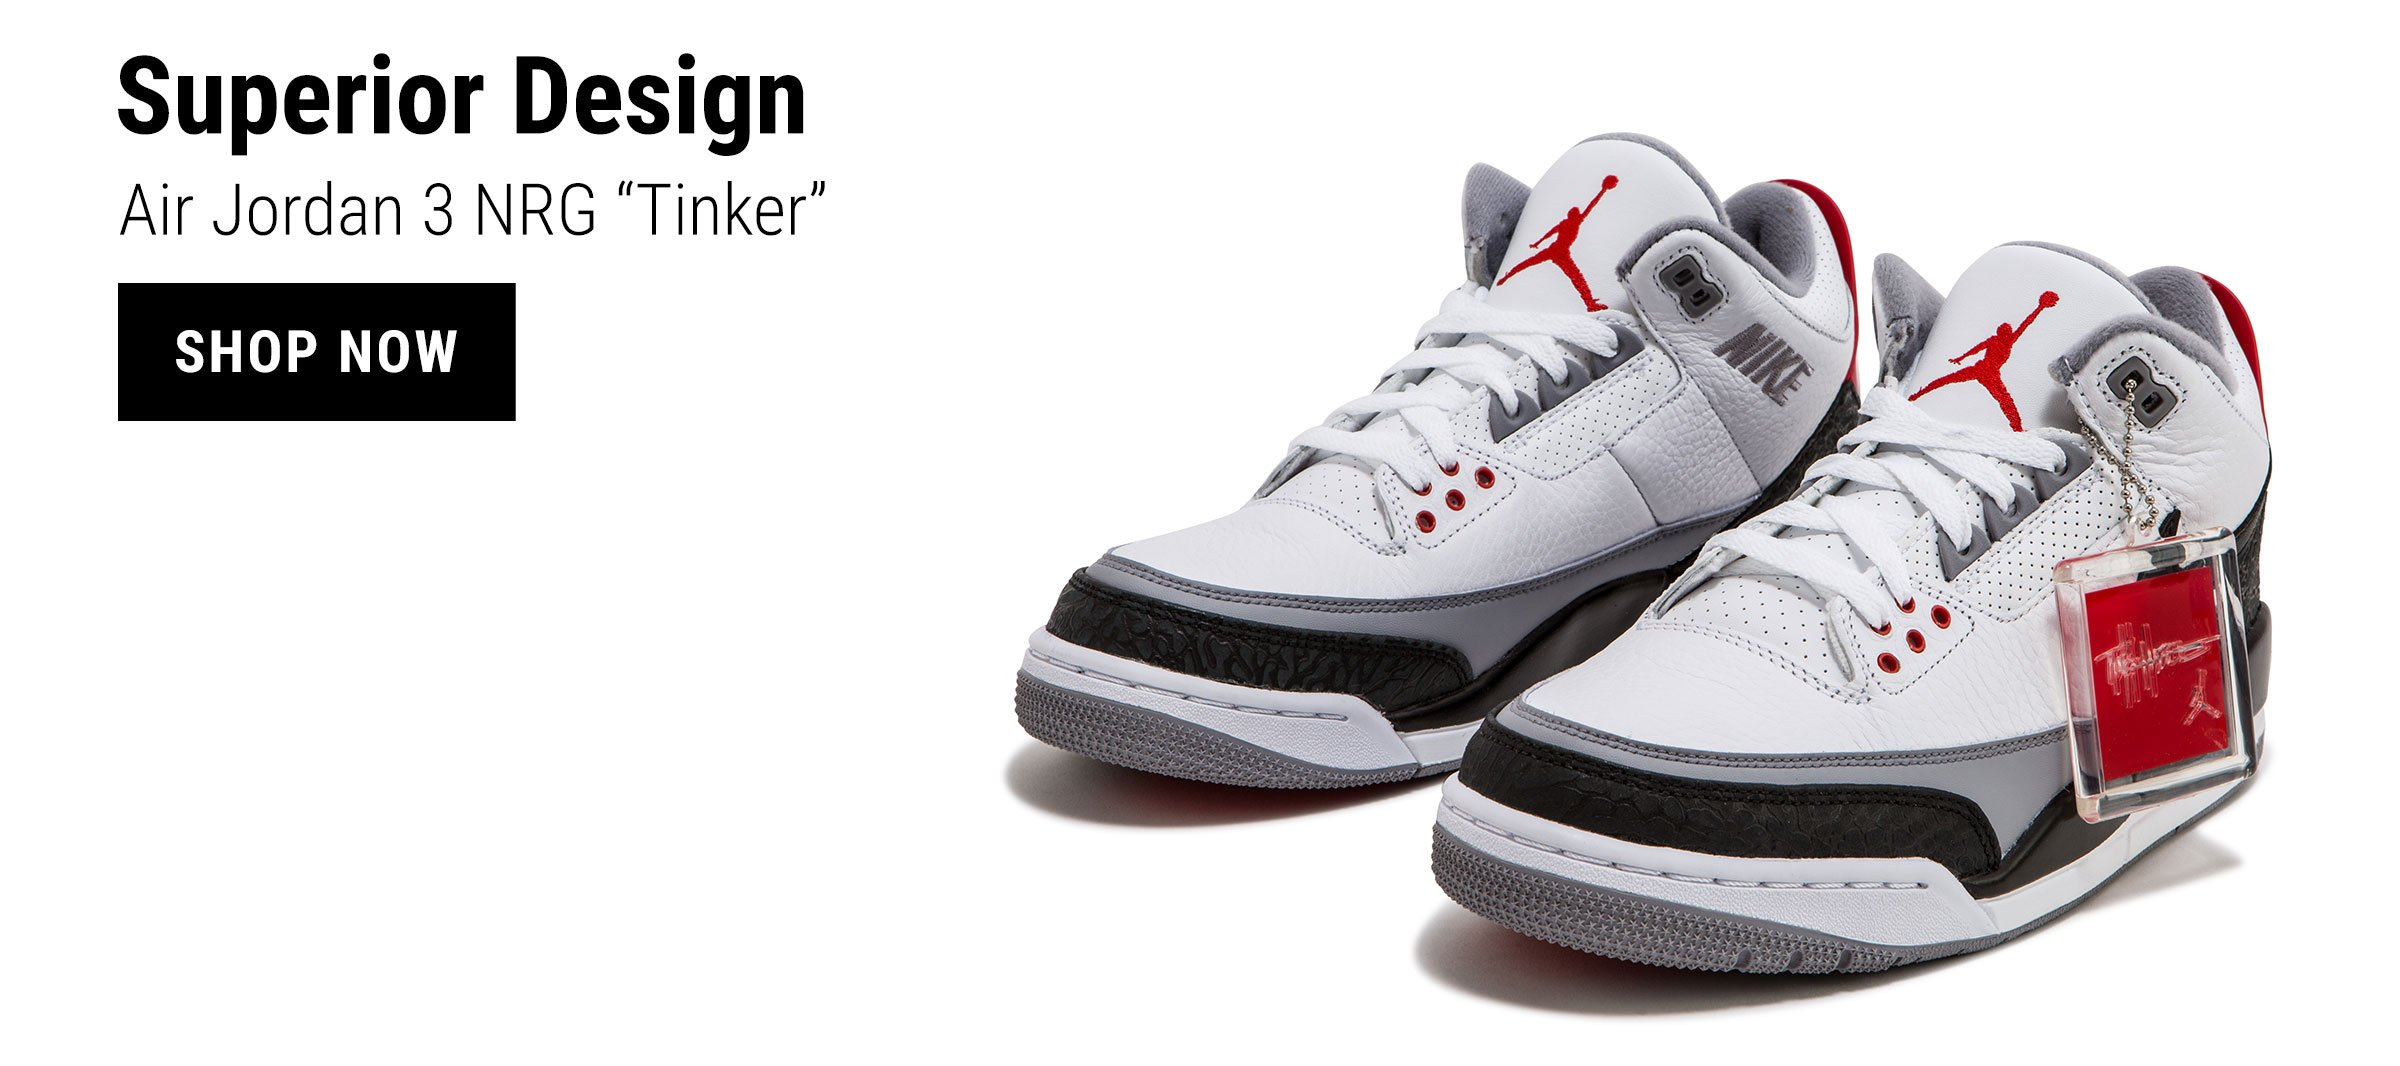 da9a00e4921 Shop the latest & greatest in Air Jordan 3 feat. the NRG Tinker and ...